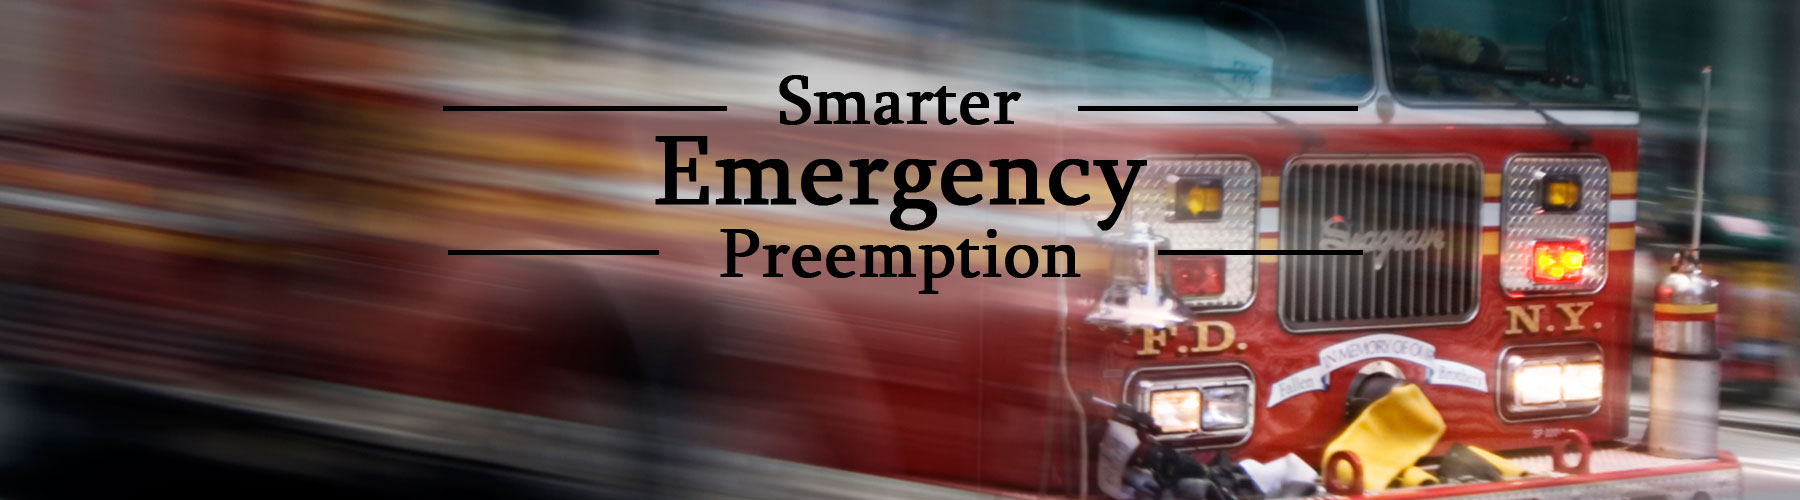 smarter-emergency-preemption